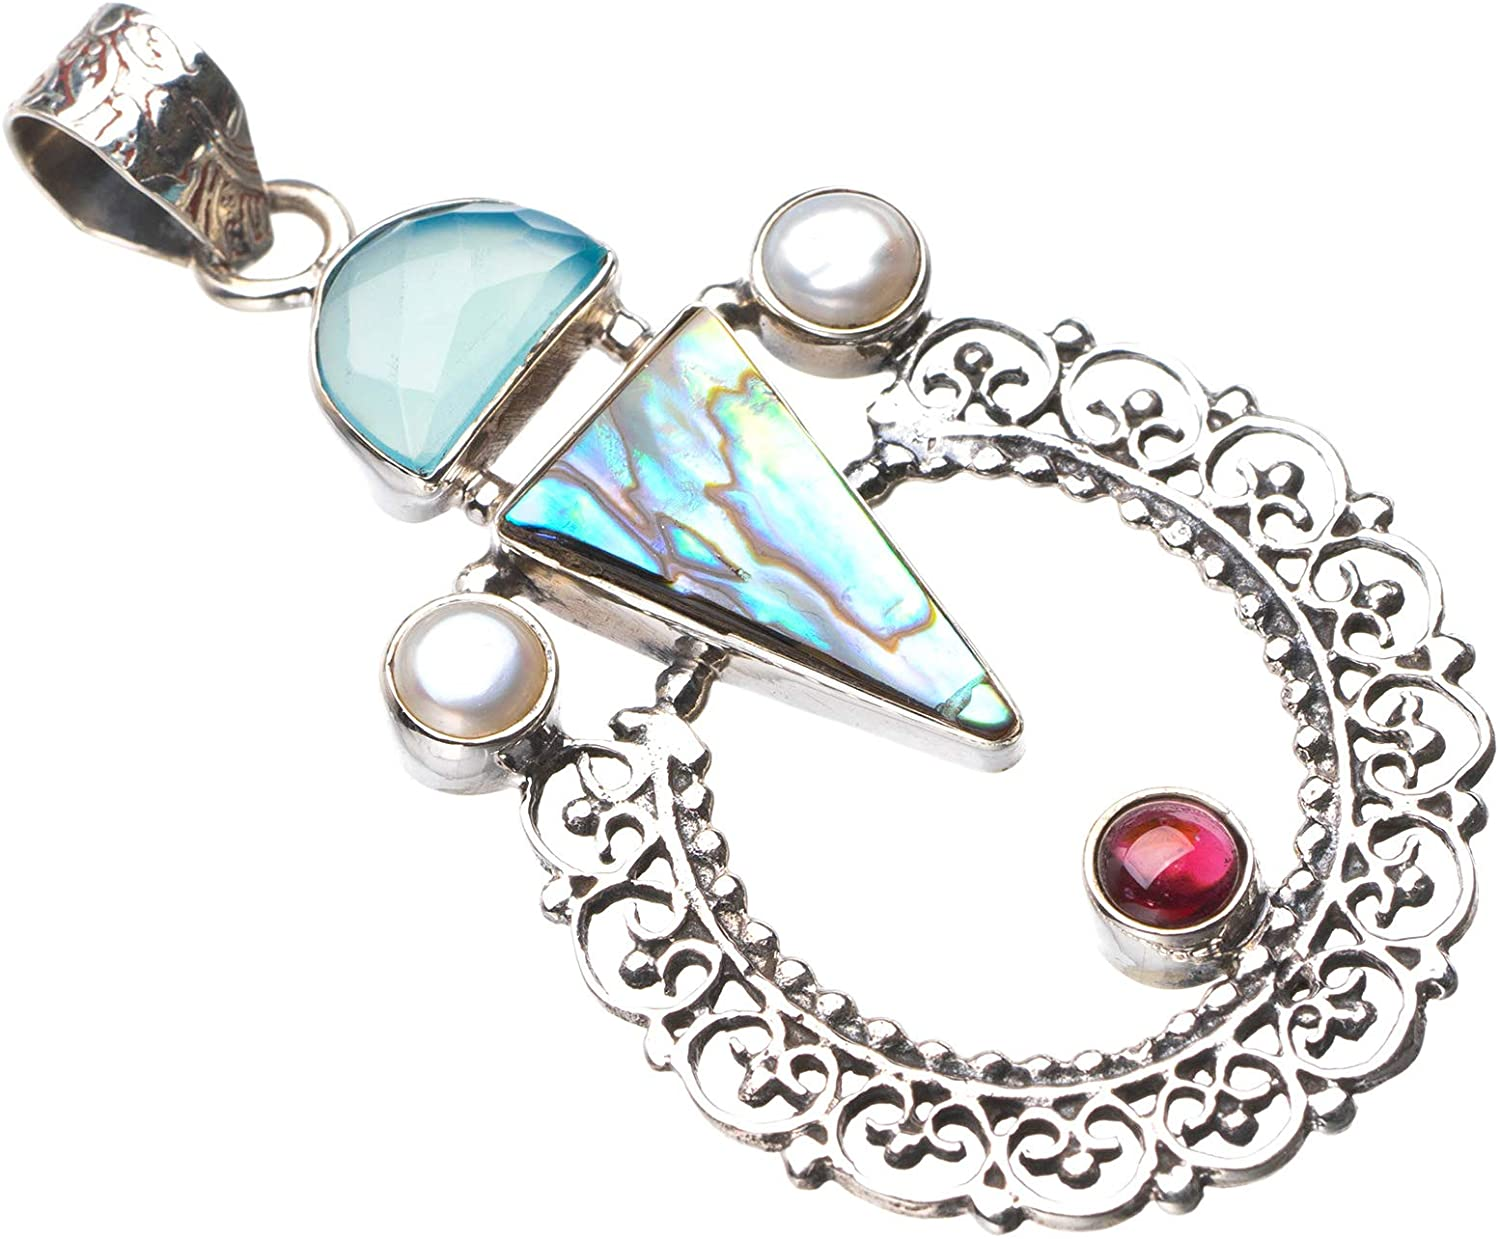 StarGems Natural Abalone Shell,Chalcedony,River Pearl And Amethyst Handmade 925 Sterling Silver Pendant 2.25